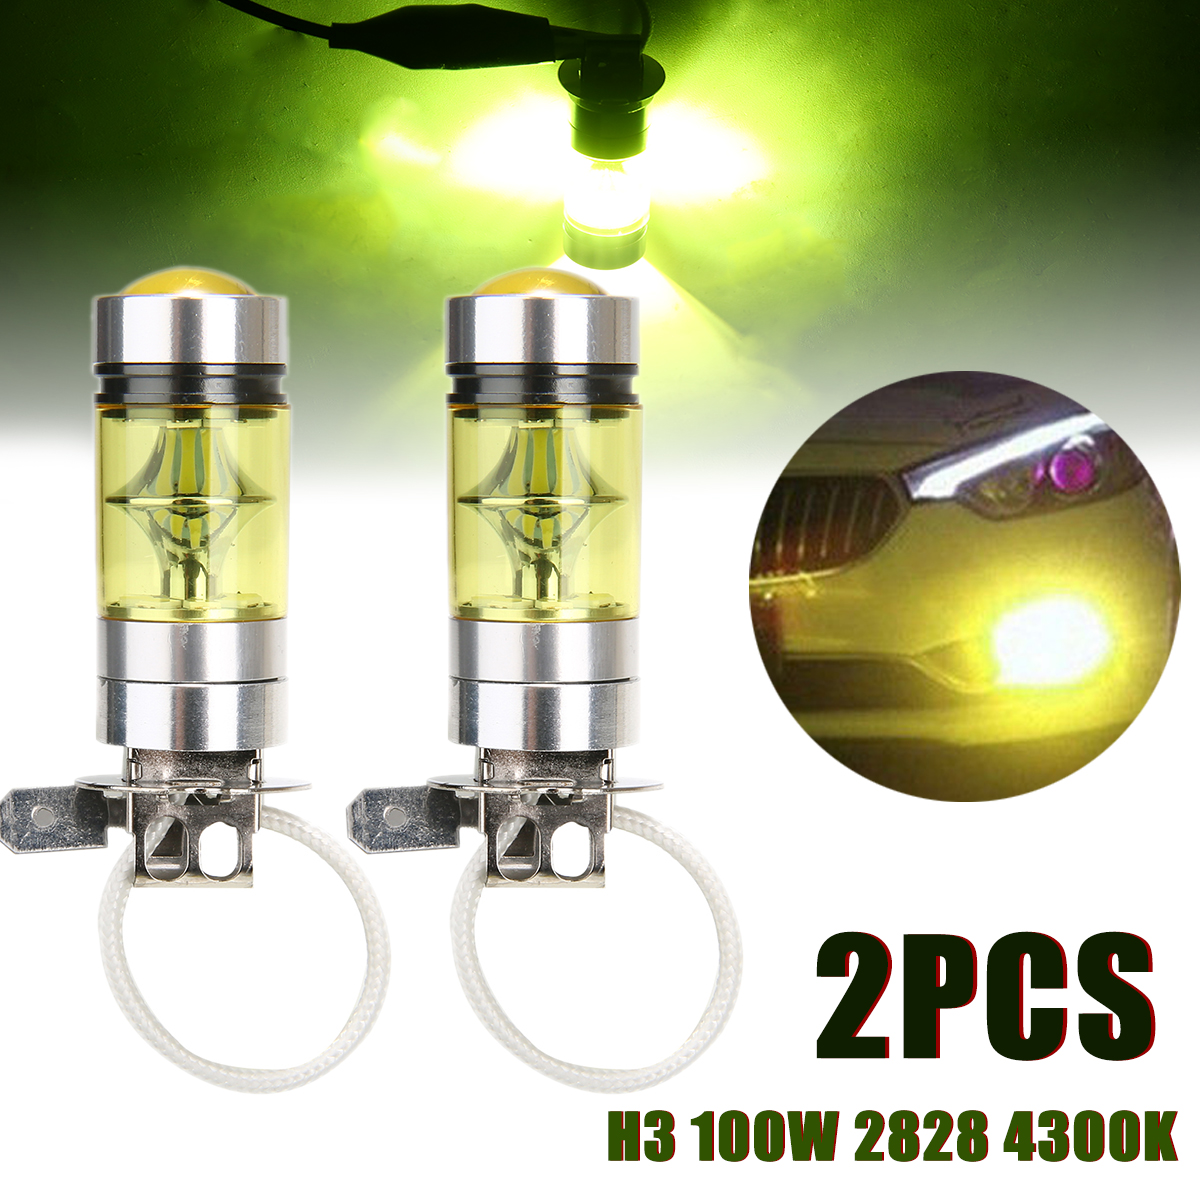 2pcs <font><b>H3</b></font> <font><b>100W</b></font> 2828 SMD <font><b>LED</b></font> Car Fog Light Tail Brake Parking Lamp Bulb Yellow 4300K 2000LM 12V-24V image